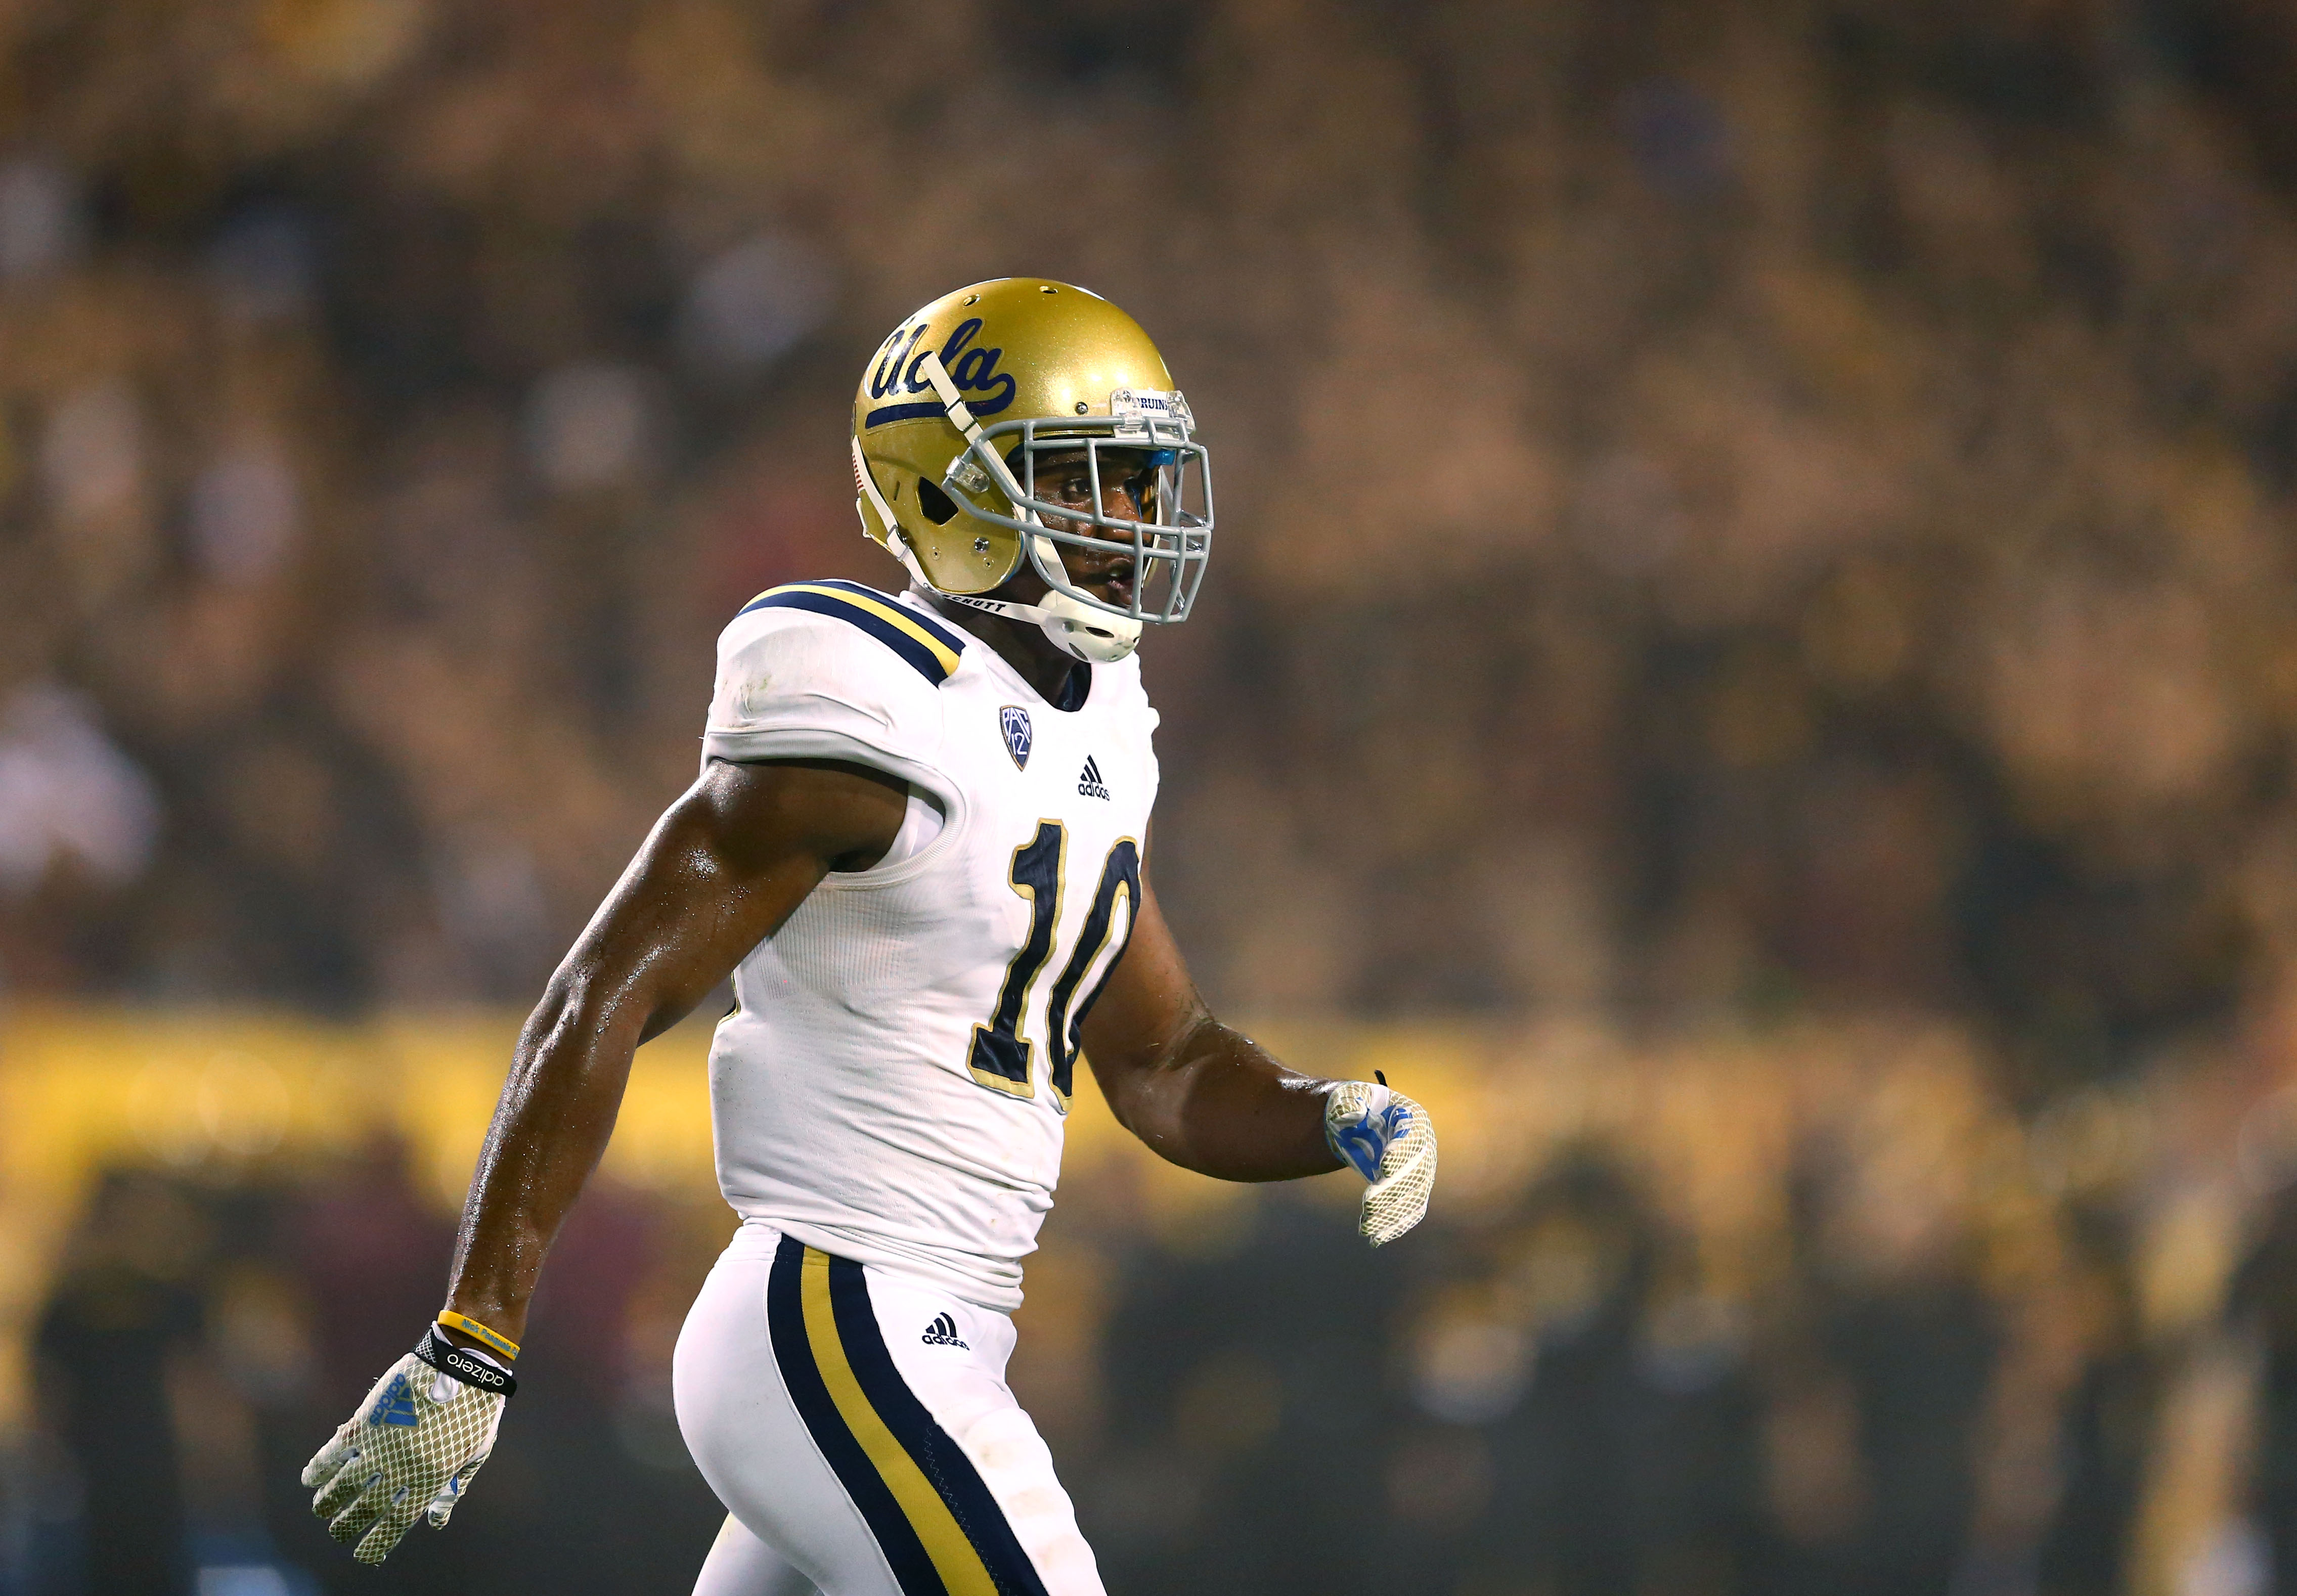 Can UCLA's Fabian Moreau and company keep Texas A&M's highly touted receivers out of the end zone tomorrow?